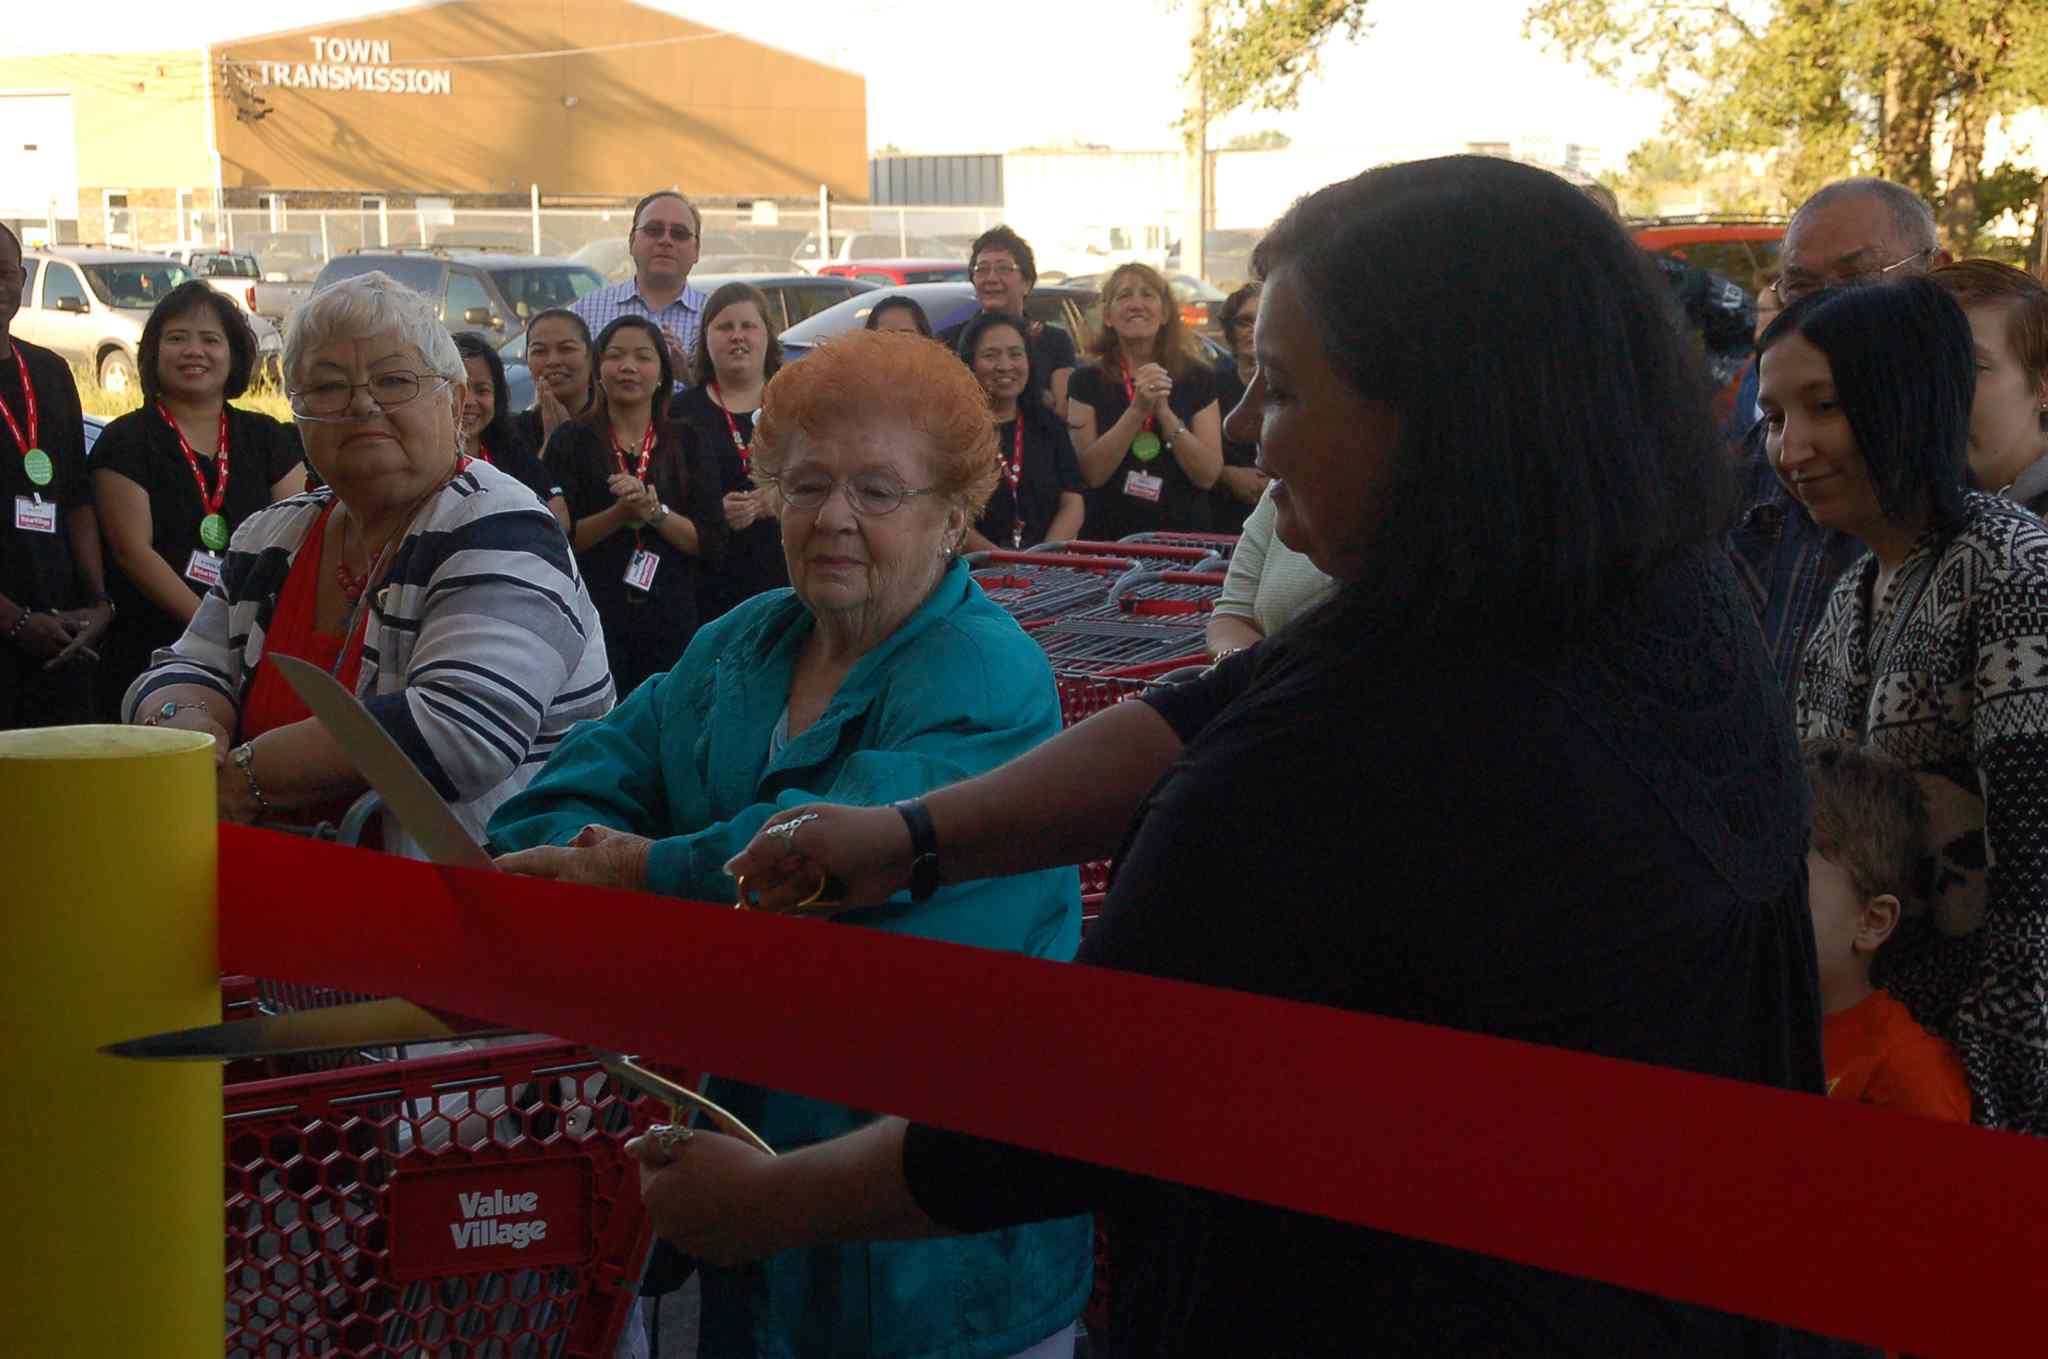 Value Village Nairn Avenue store manager Sherri Hill cuts the ribbon officially opening the relocated location on Aug. 28 as eager shoppers look on.